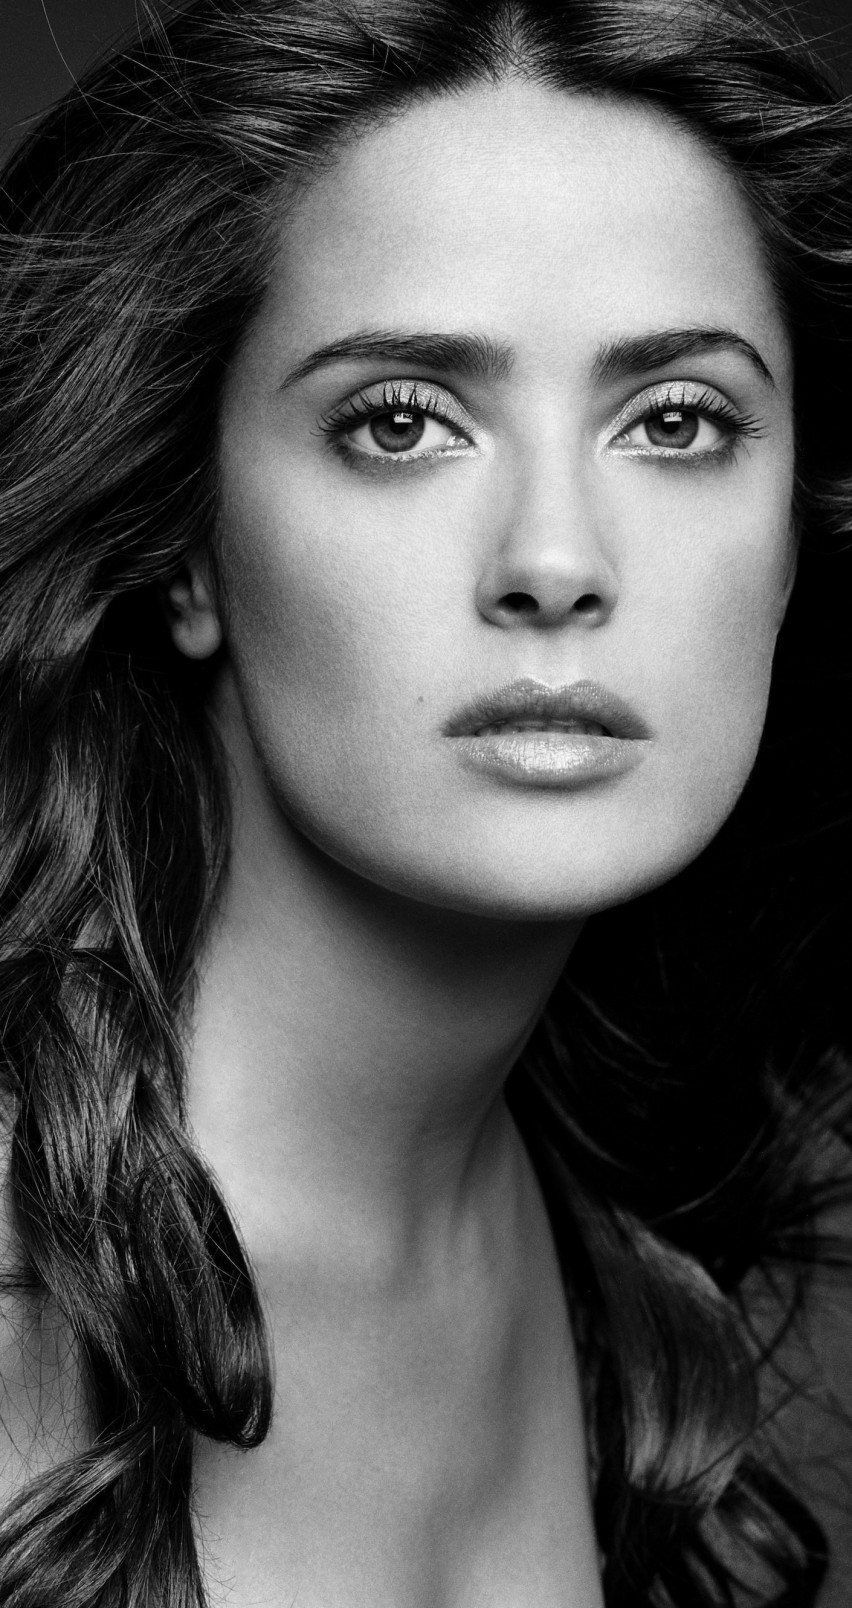 Salma Hayek Black & White Portrait Wallpaper for Apple iPhone 6 / 6s